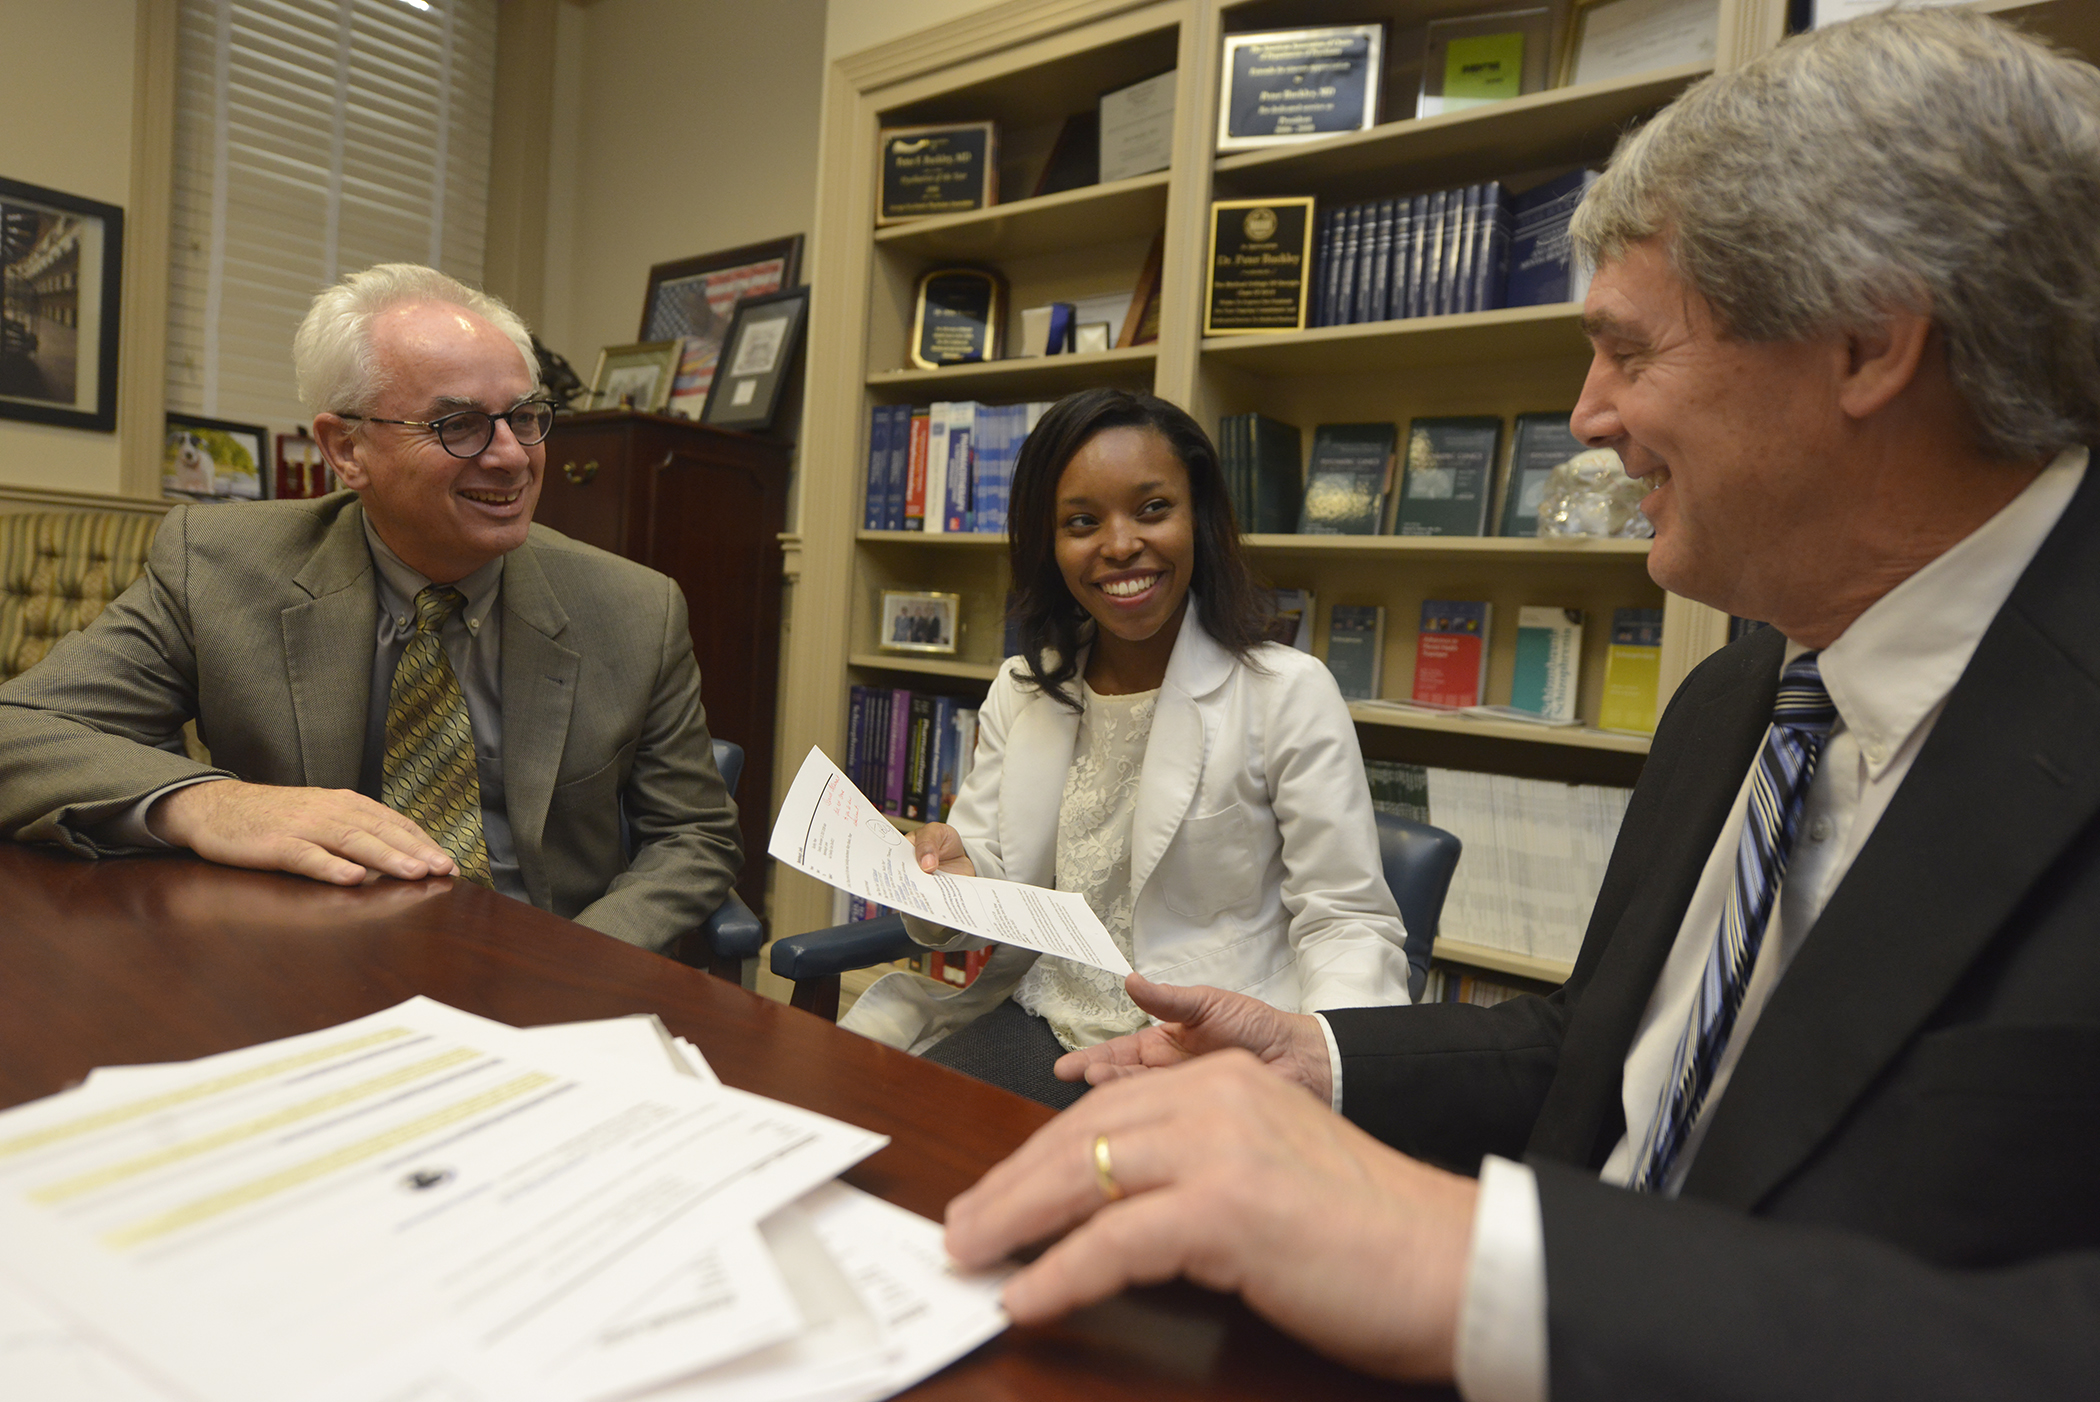 Drs. Peter Buckley (from left), Aleiya Butler and Alex Mabe